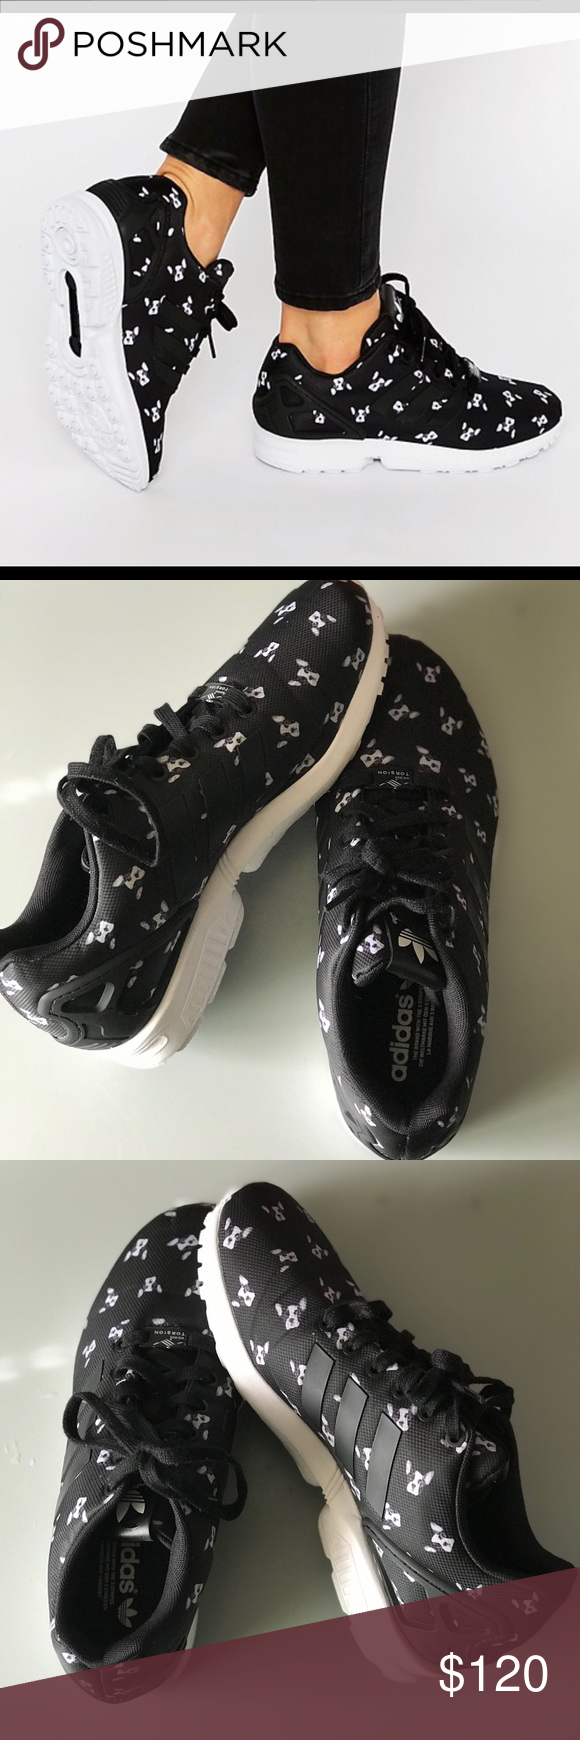 outlet store sale most popular best sell Adidas ZX Flux Torrison French Bulldog Sneakers Adidas ...